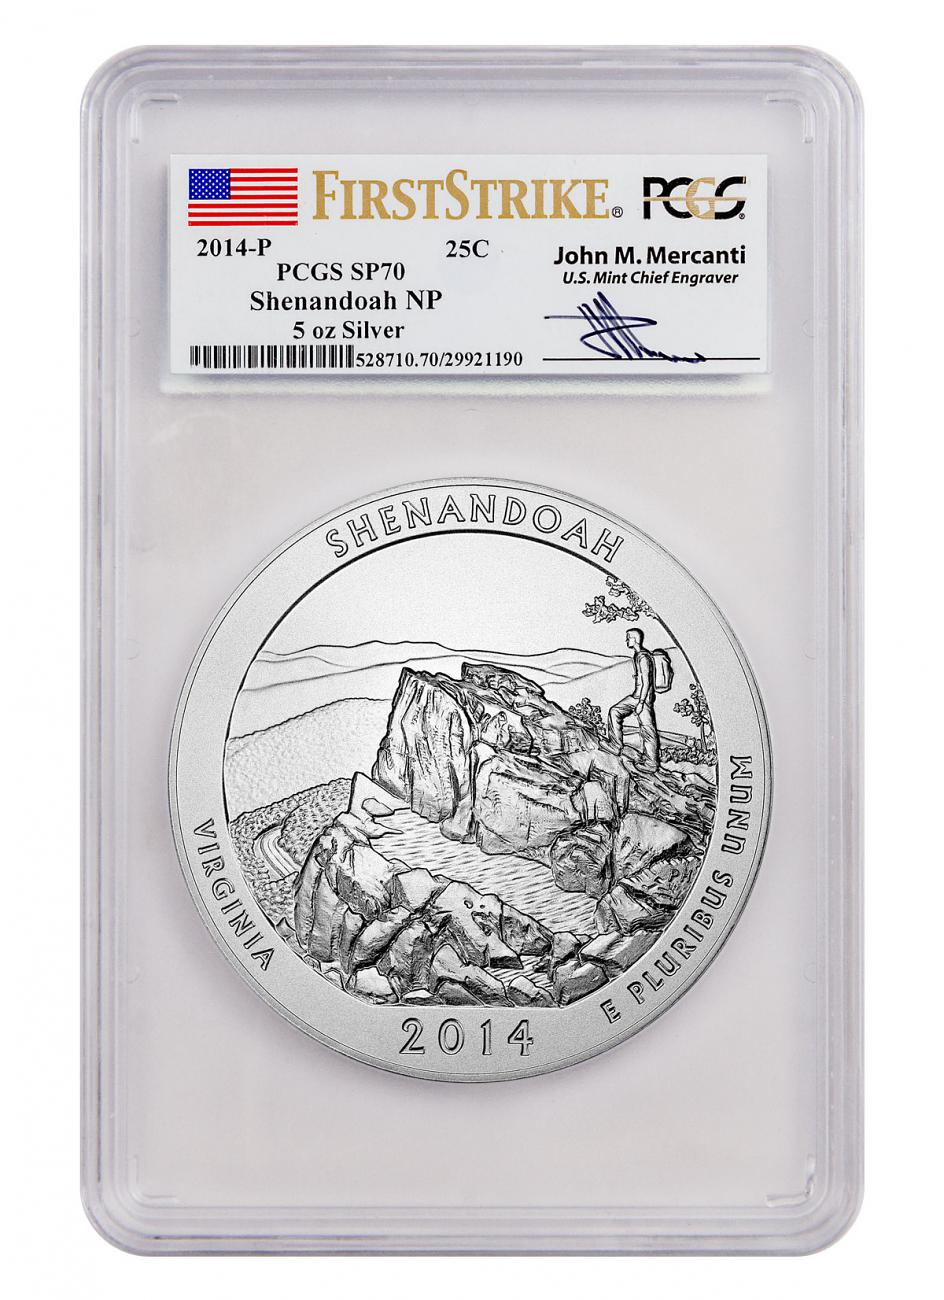 2014-P Shenandoah 5 oz. Silver America the Beautiful Specimen Coin PCGS SP70 FS (Mercanti Signed Label)